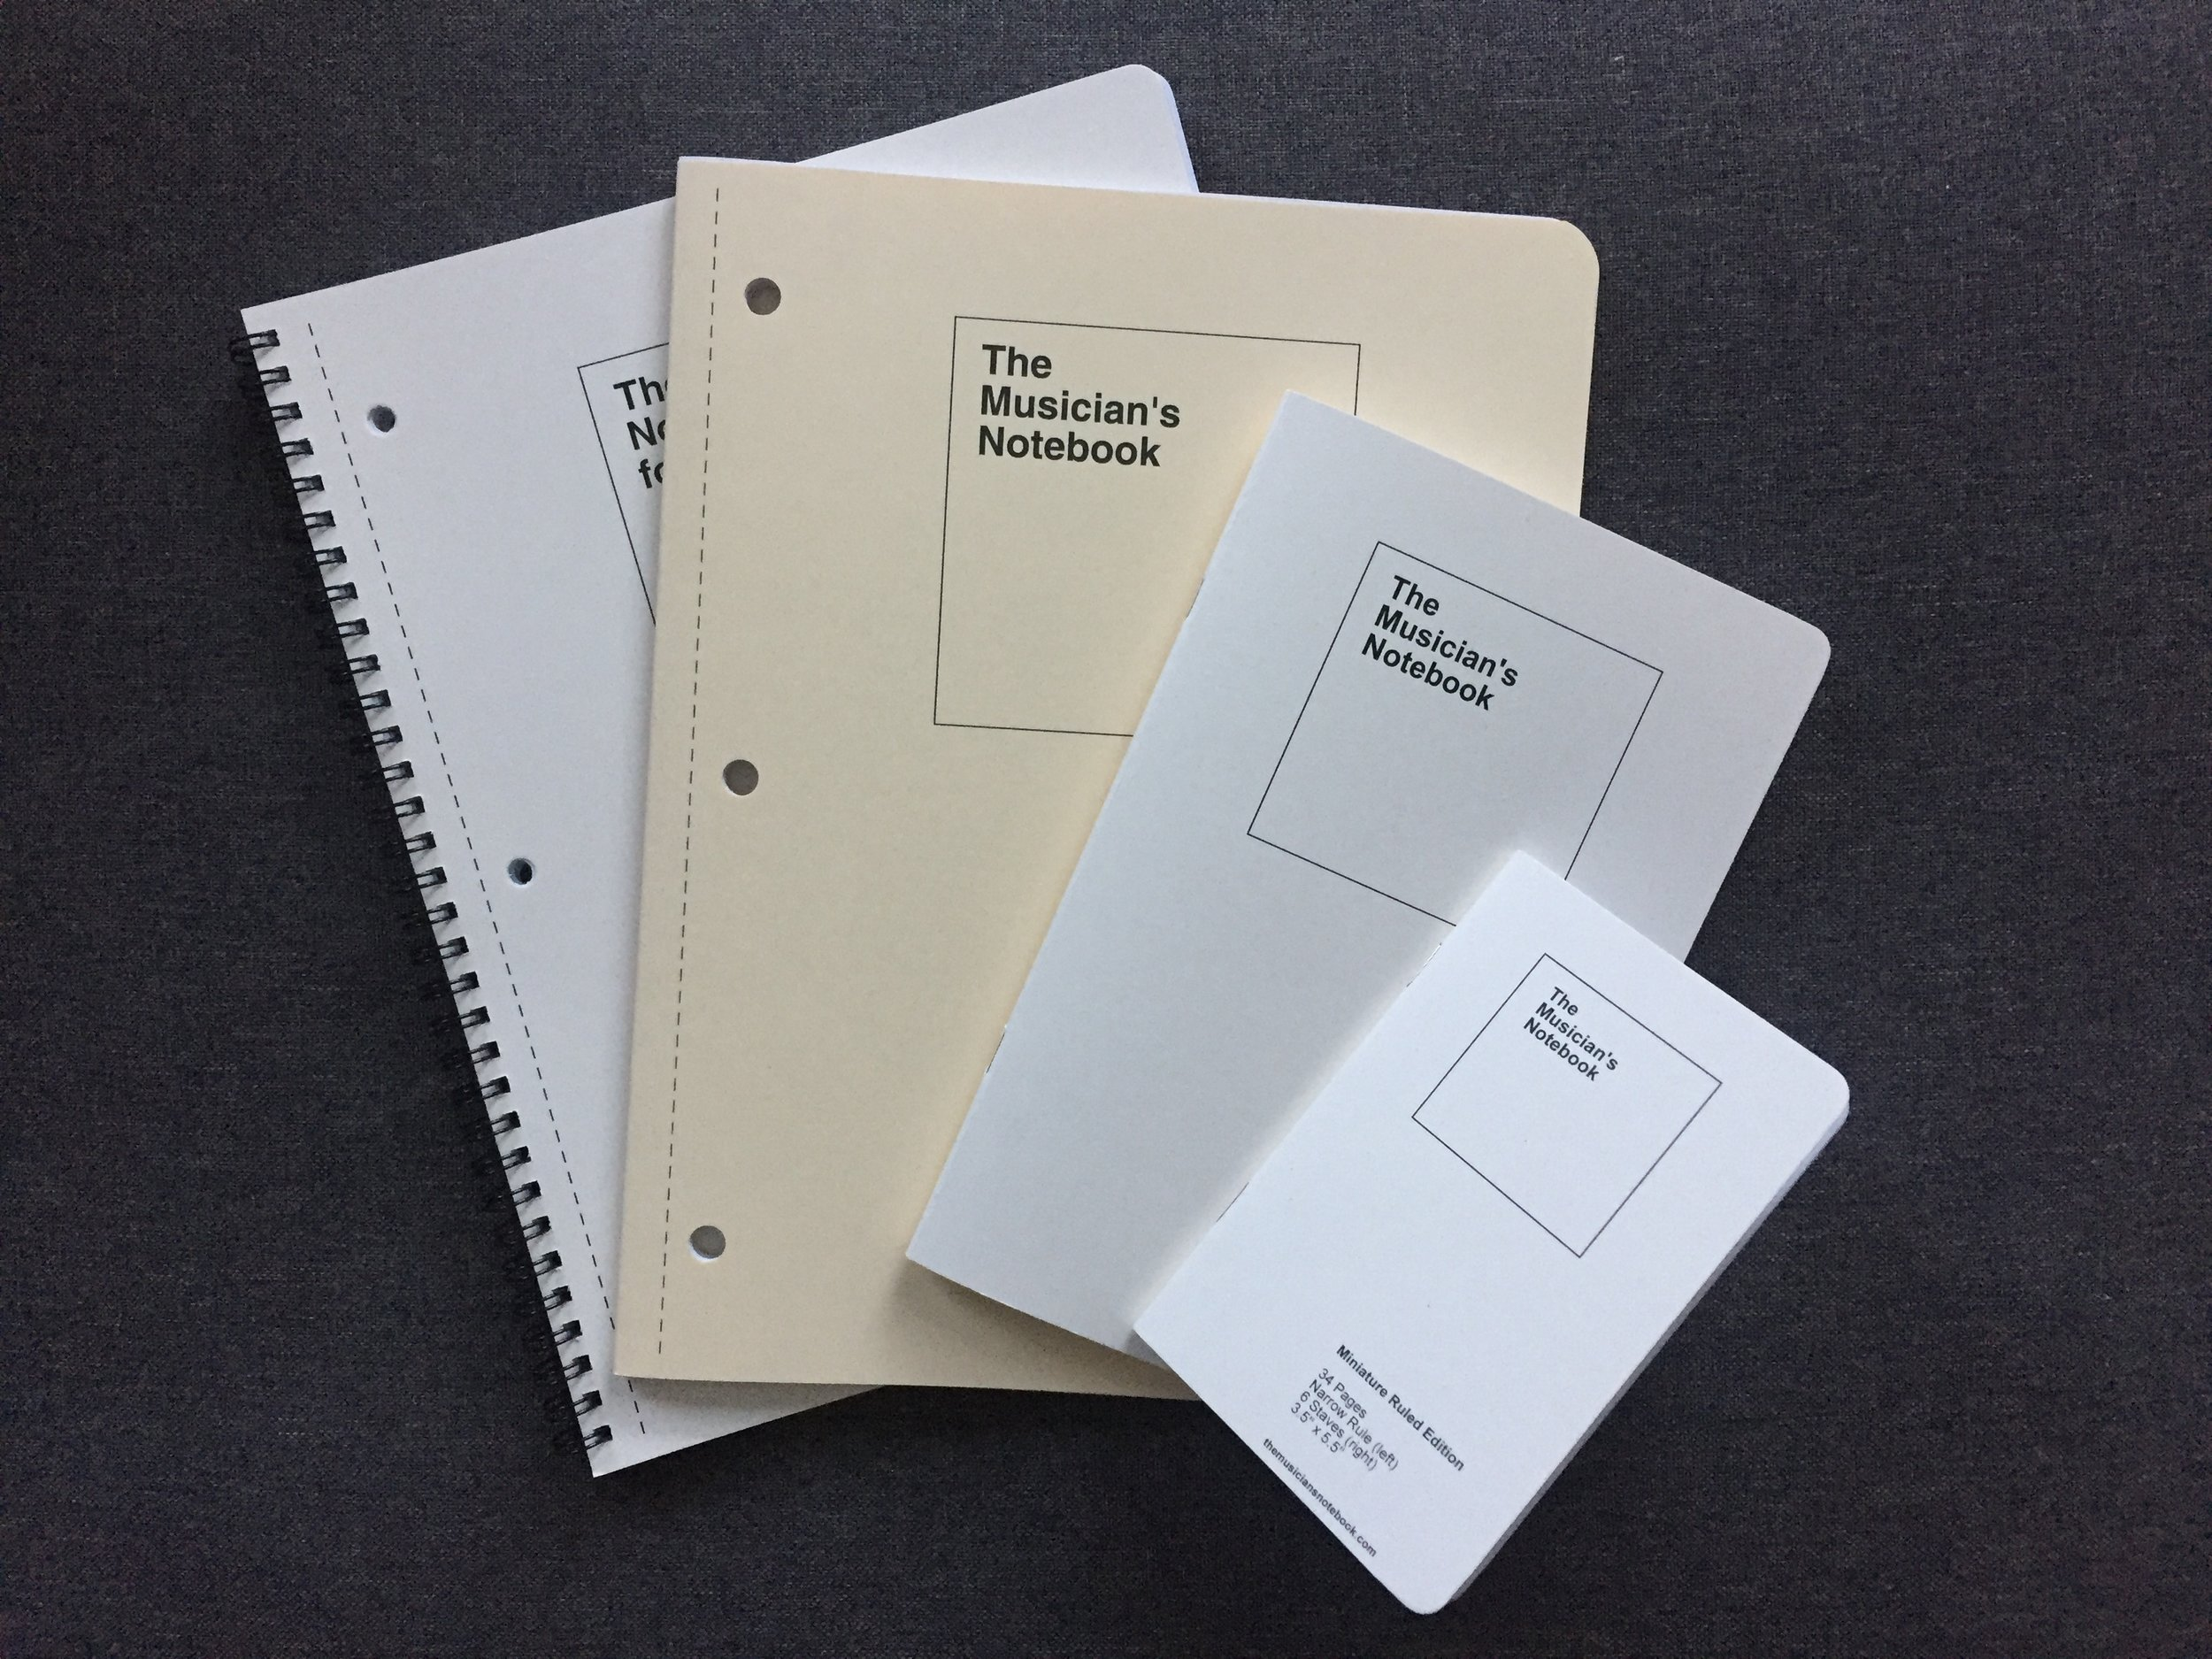 A Family of Notebooks - One for class, one to keep in your instrument case, and one to keep in your pocket.